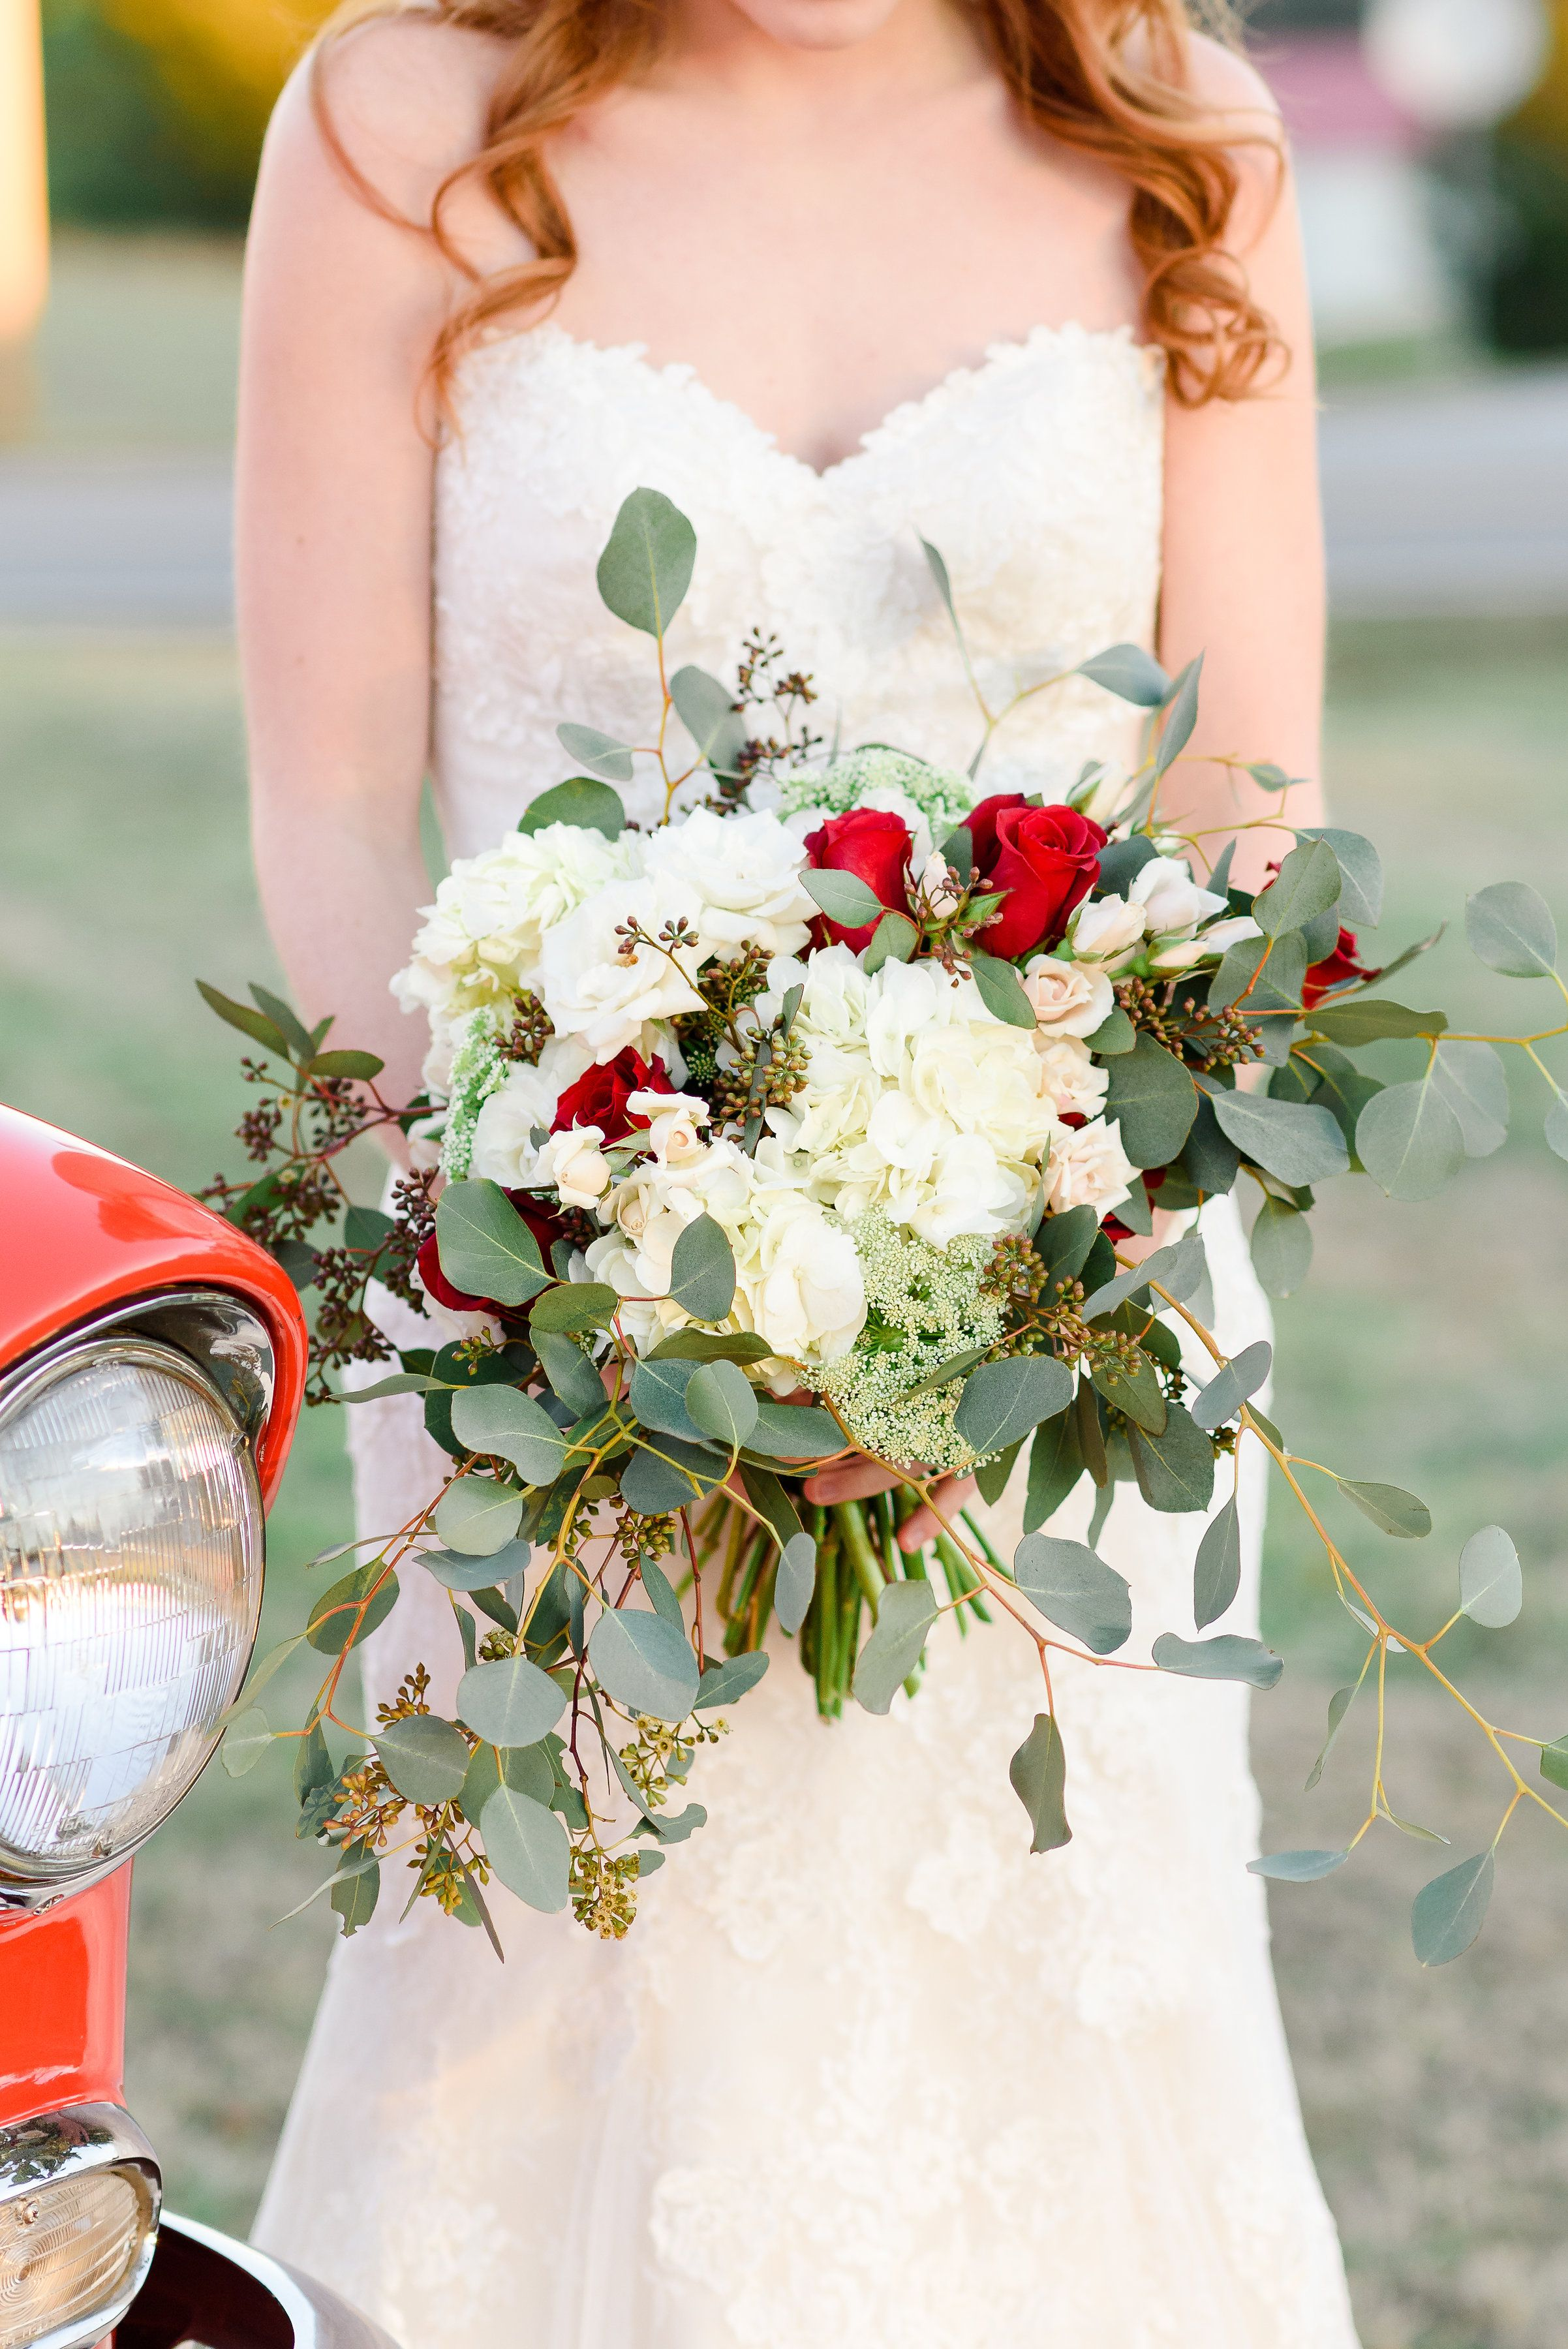 White Hydrangeas Red Roses And Majolica Spray Roses In A Bridal Bouquet With Seeded Eucalyptu White Hydrangea Wedding White Bridal Bouquet Red And White Roses [ 3600 x 2403 Pixel ]